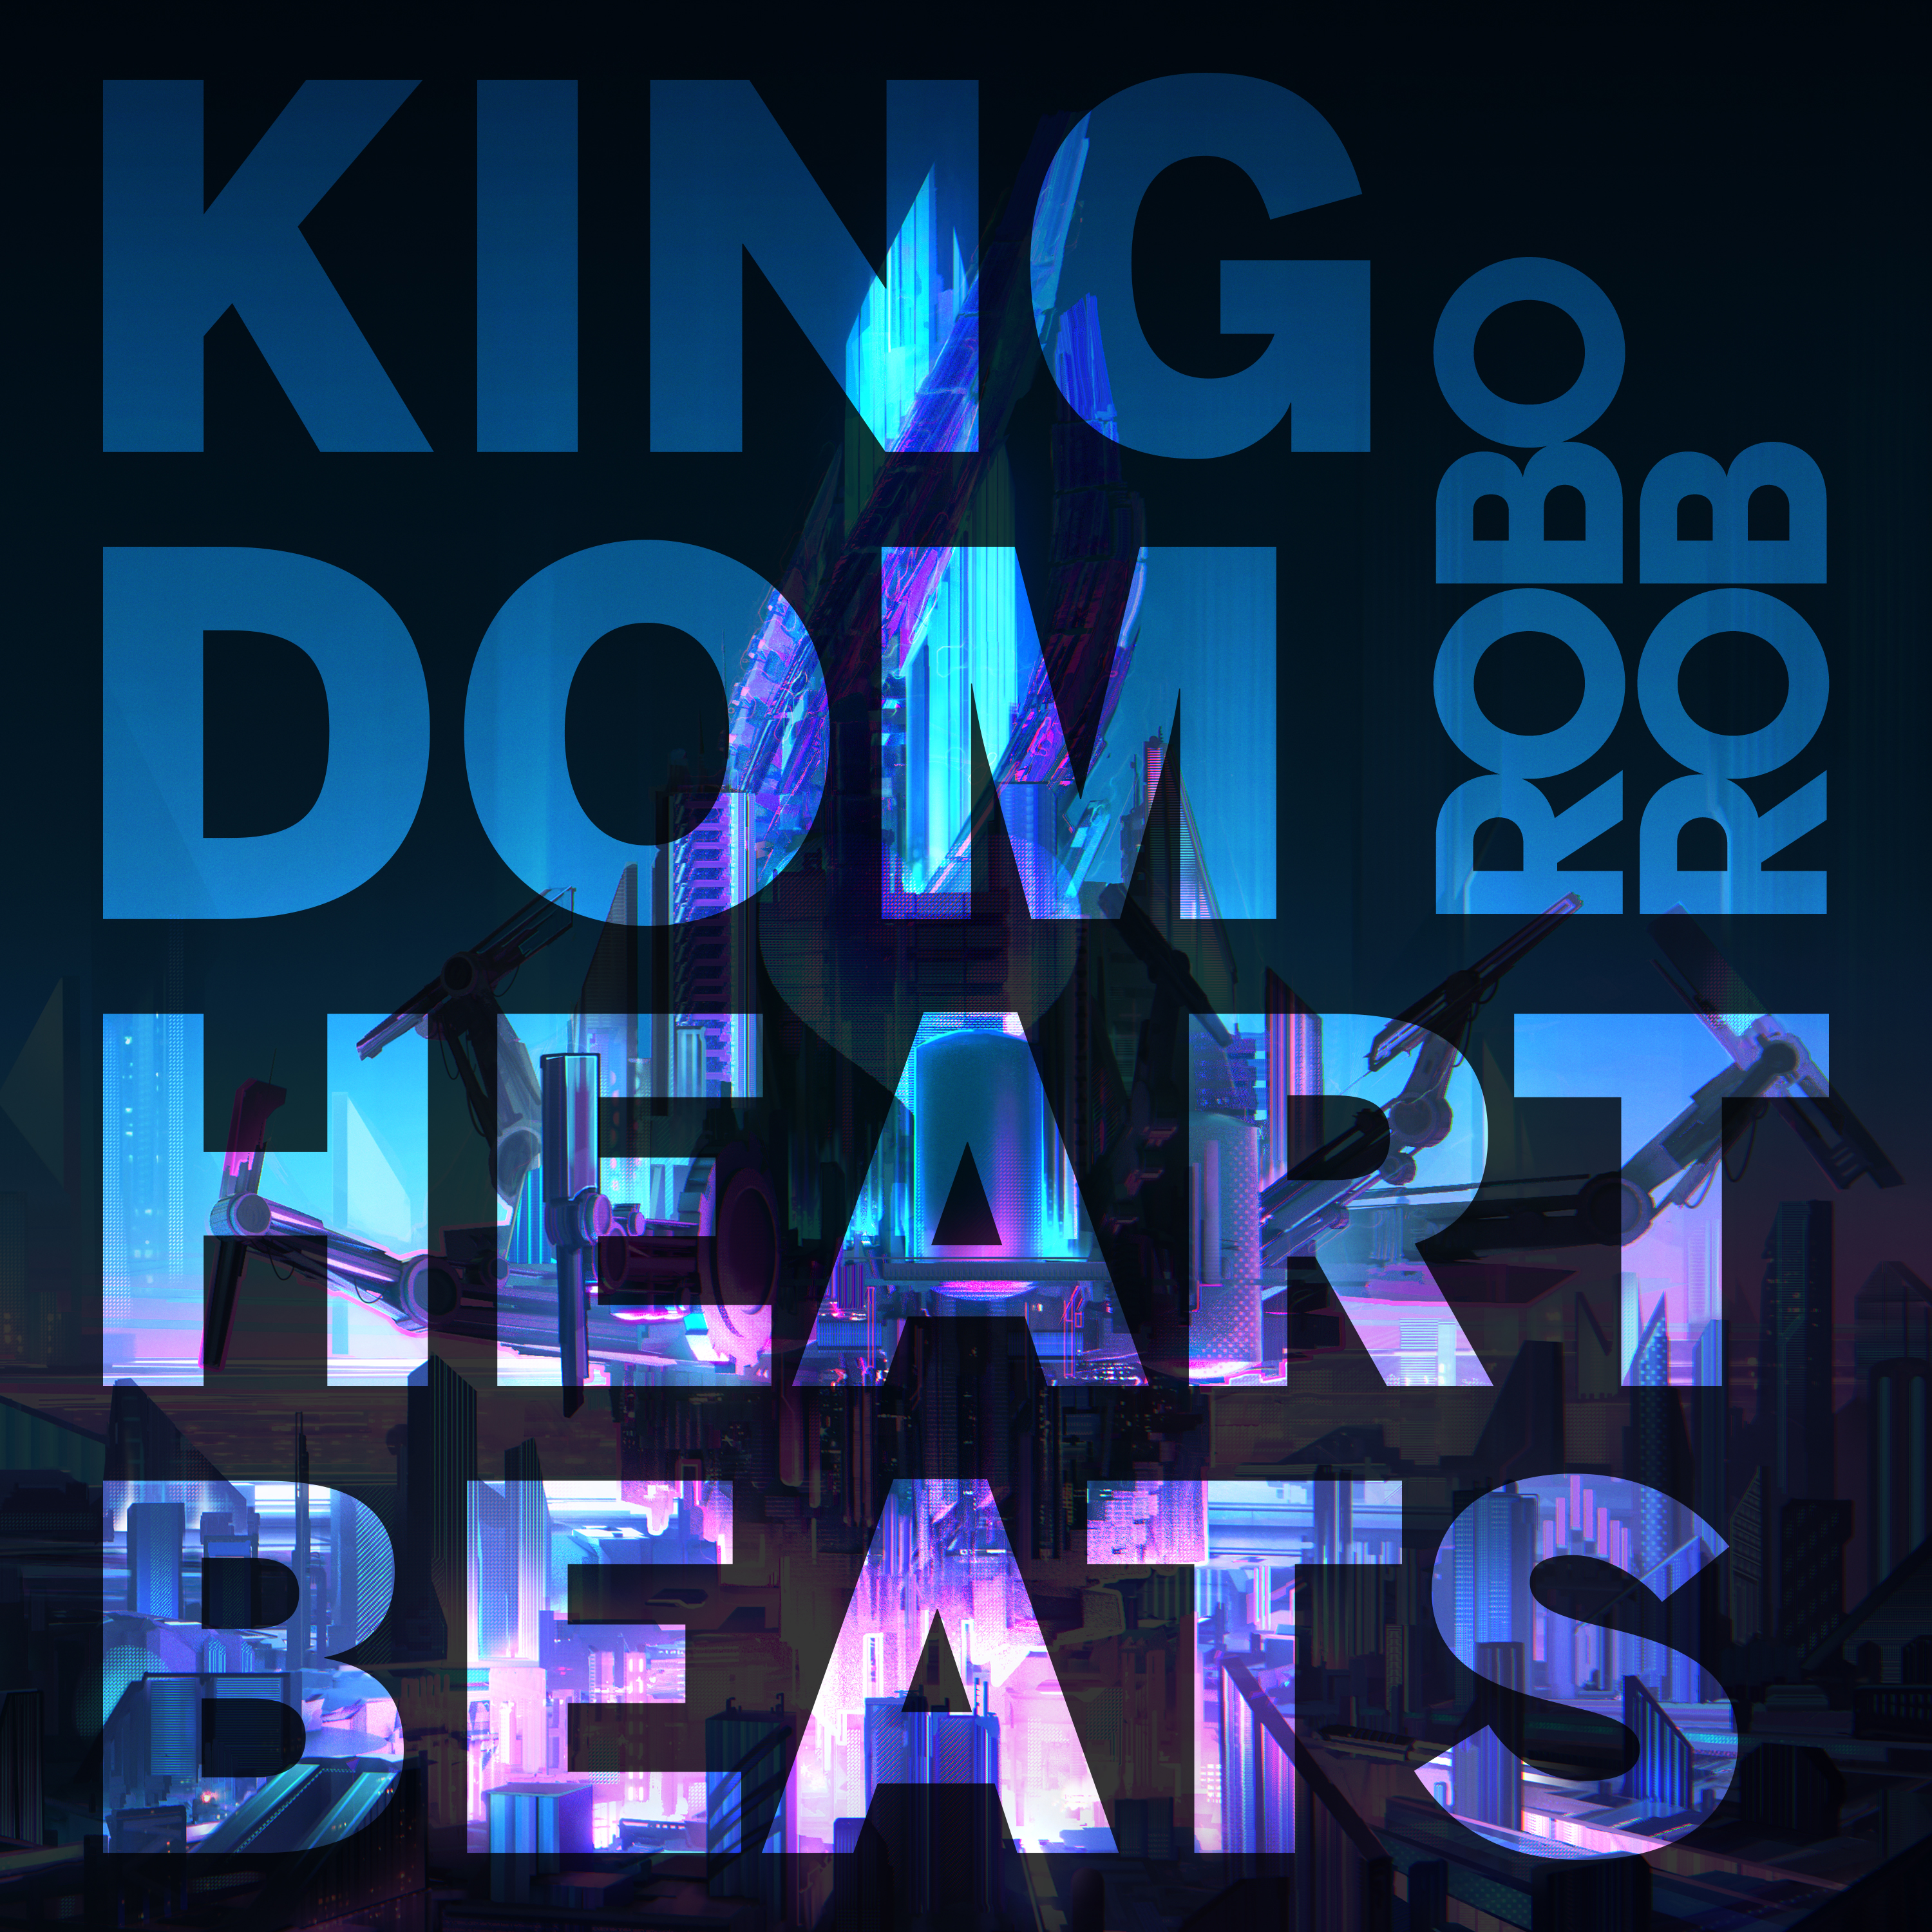 'KINGDOM HEARTBEATS' EDM cover album releasing on May 10th, 2019 - News -     Kingdom Hearts Insider